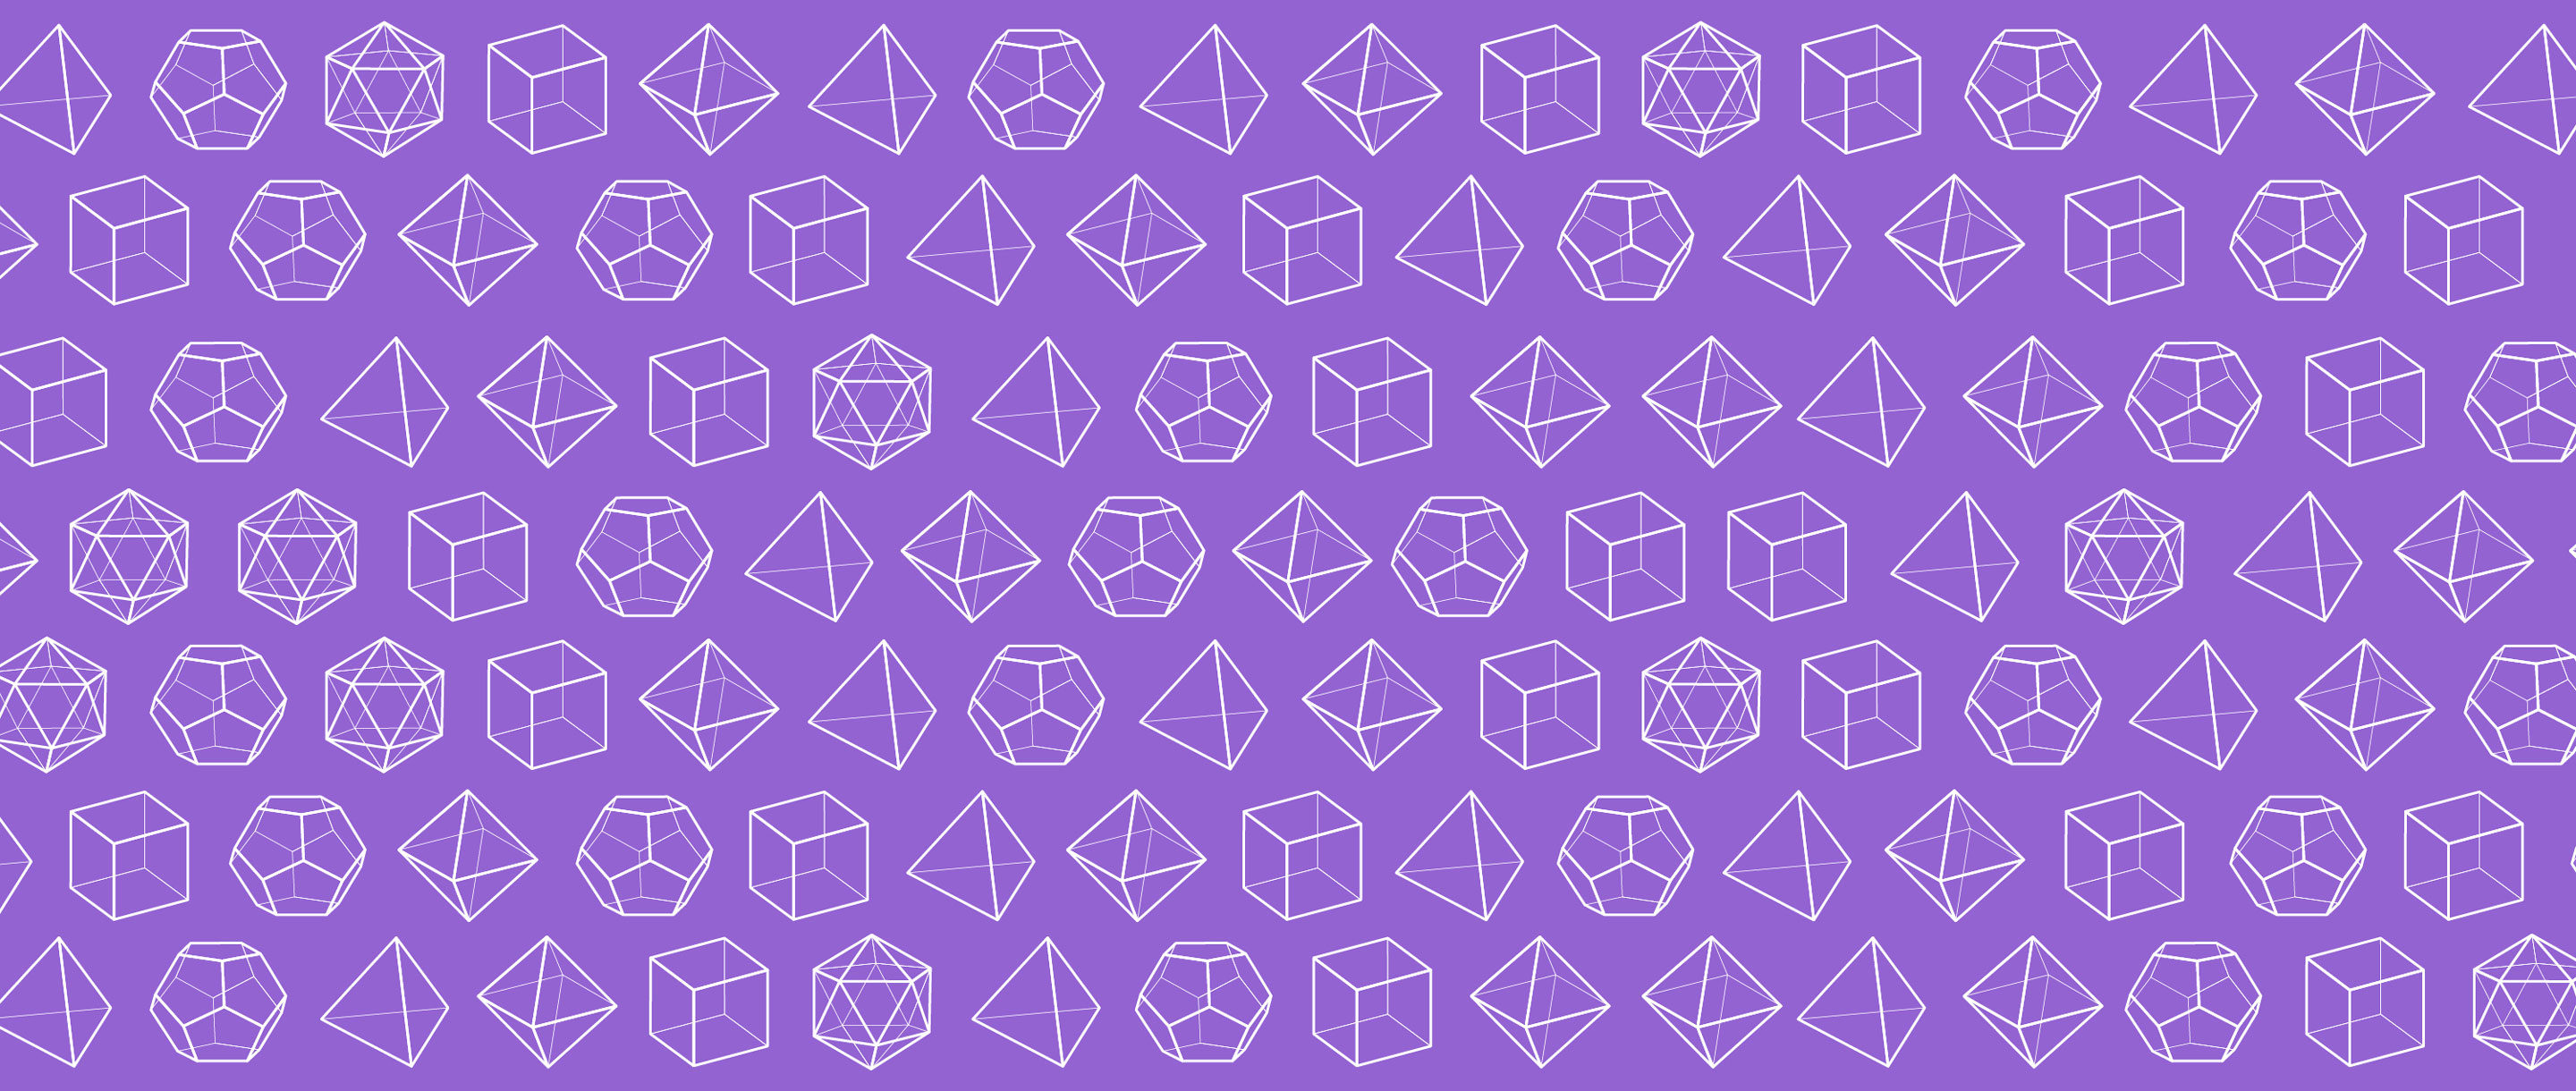 """It's """"a definitive study for all time, like writing the final book,"""" says one researcher who's mapping out new classes of geometric structures."""